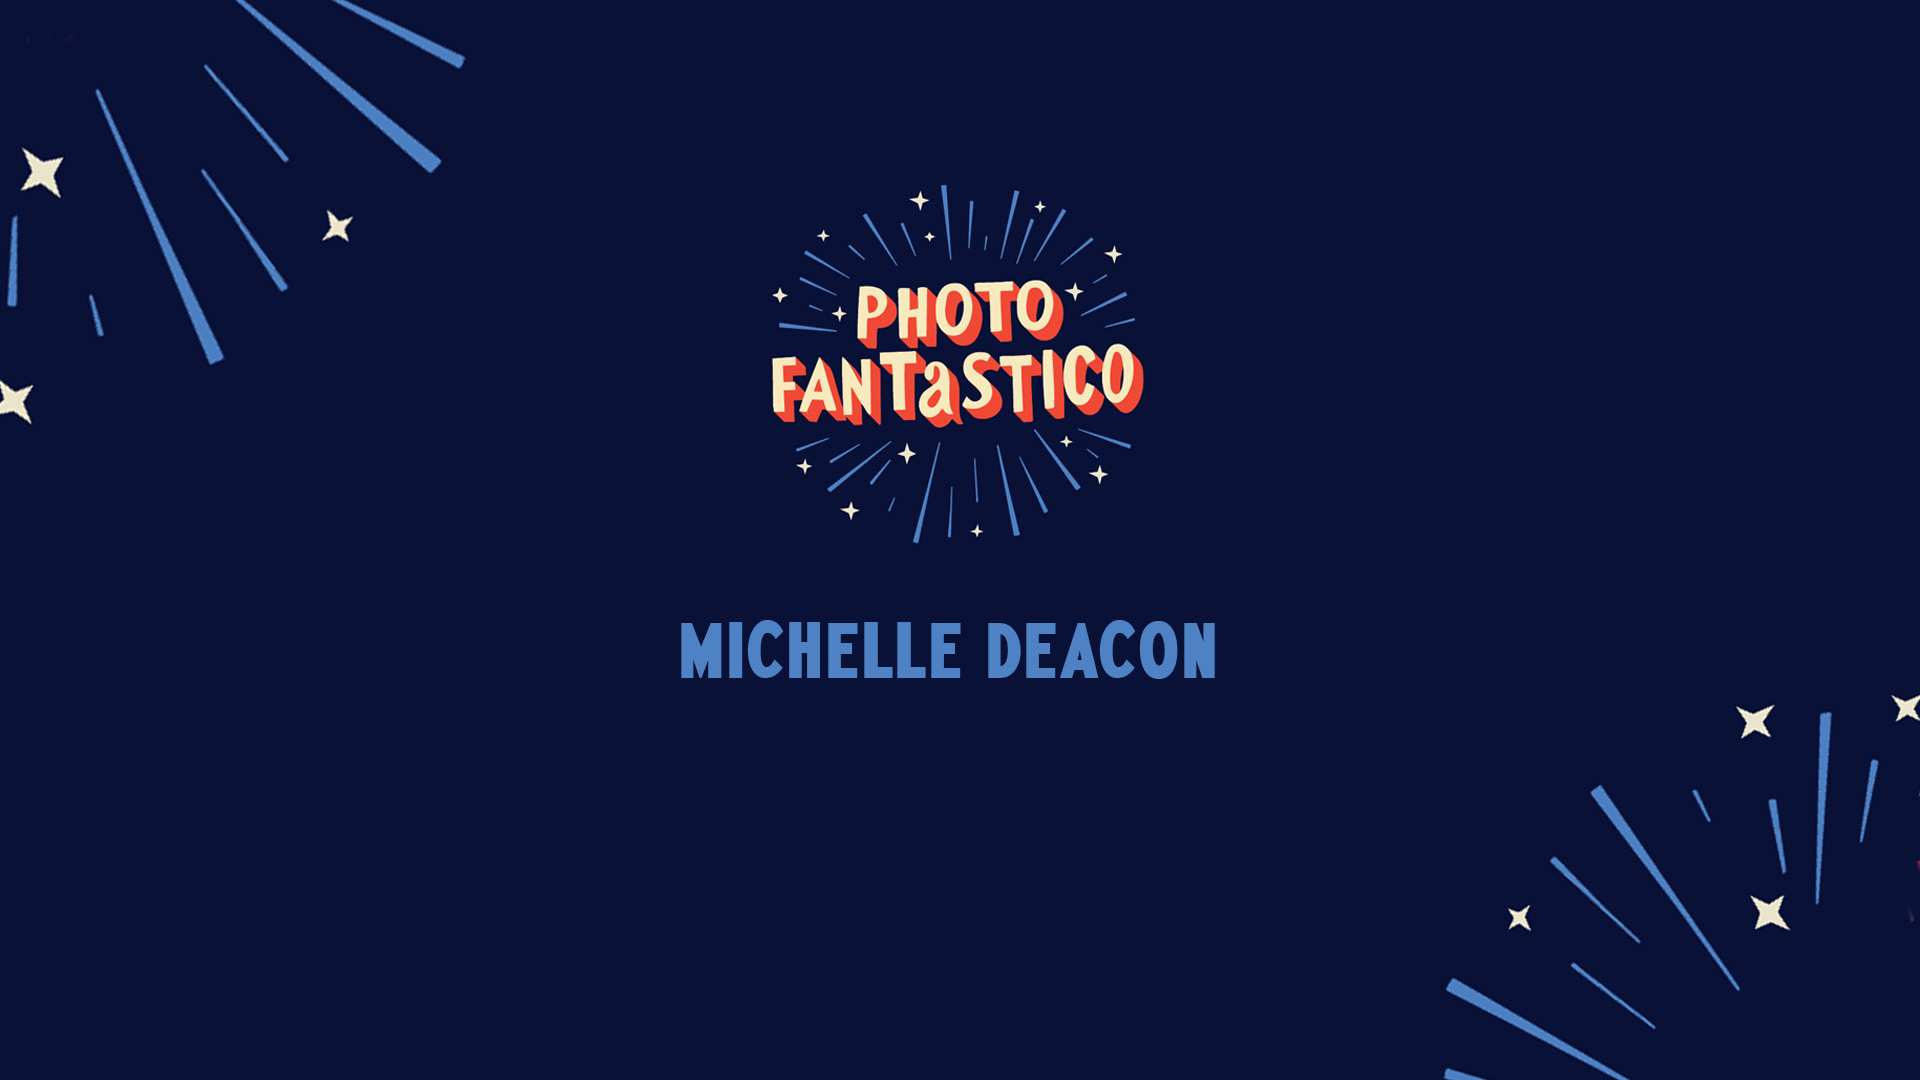 Michelle Deacon